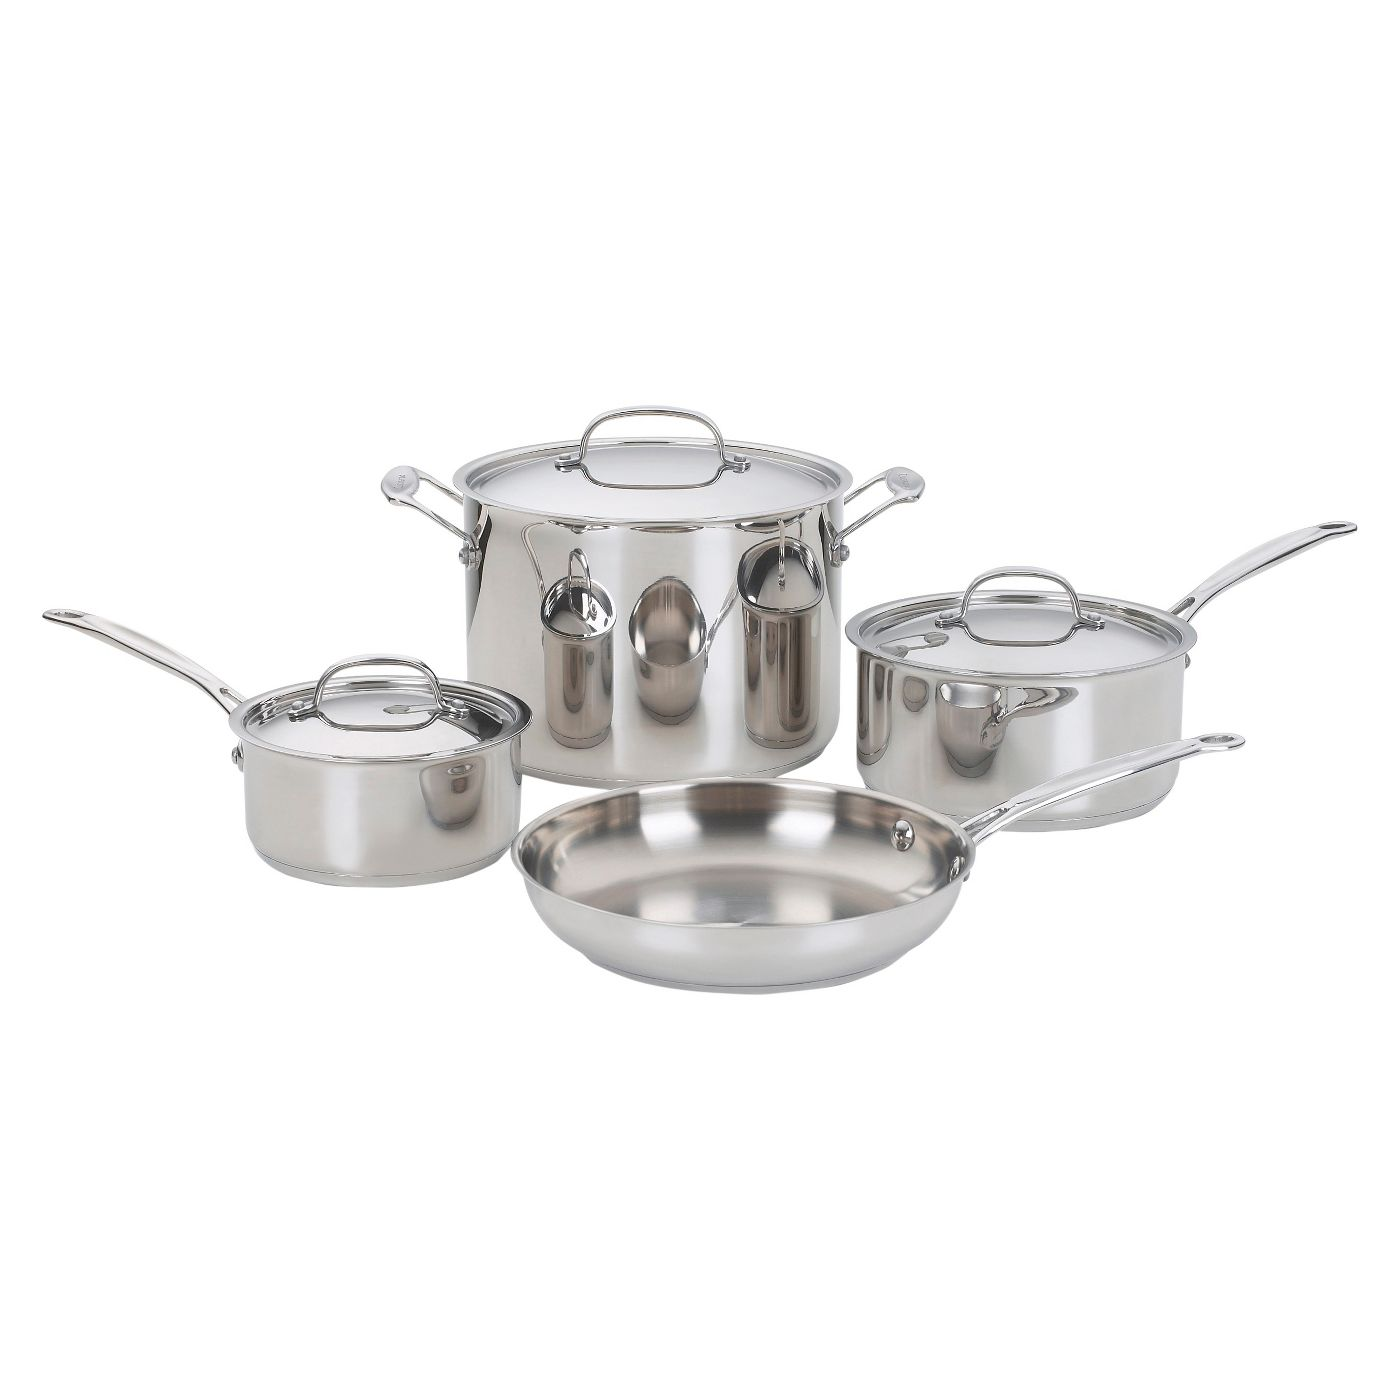 Cuisinart® Chef's Classic Stainless Steel Set 7pc Set -  77-7 - image 2 of 2